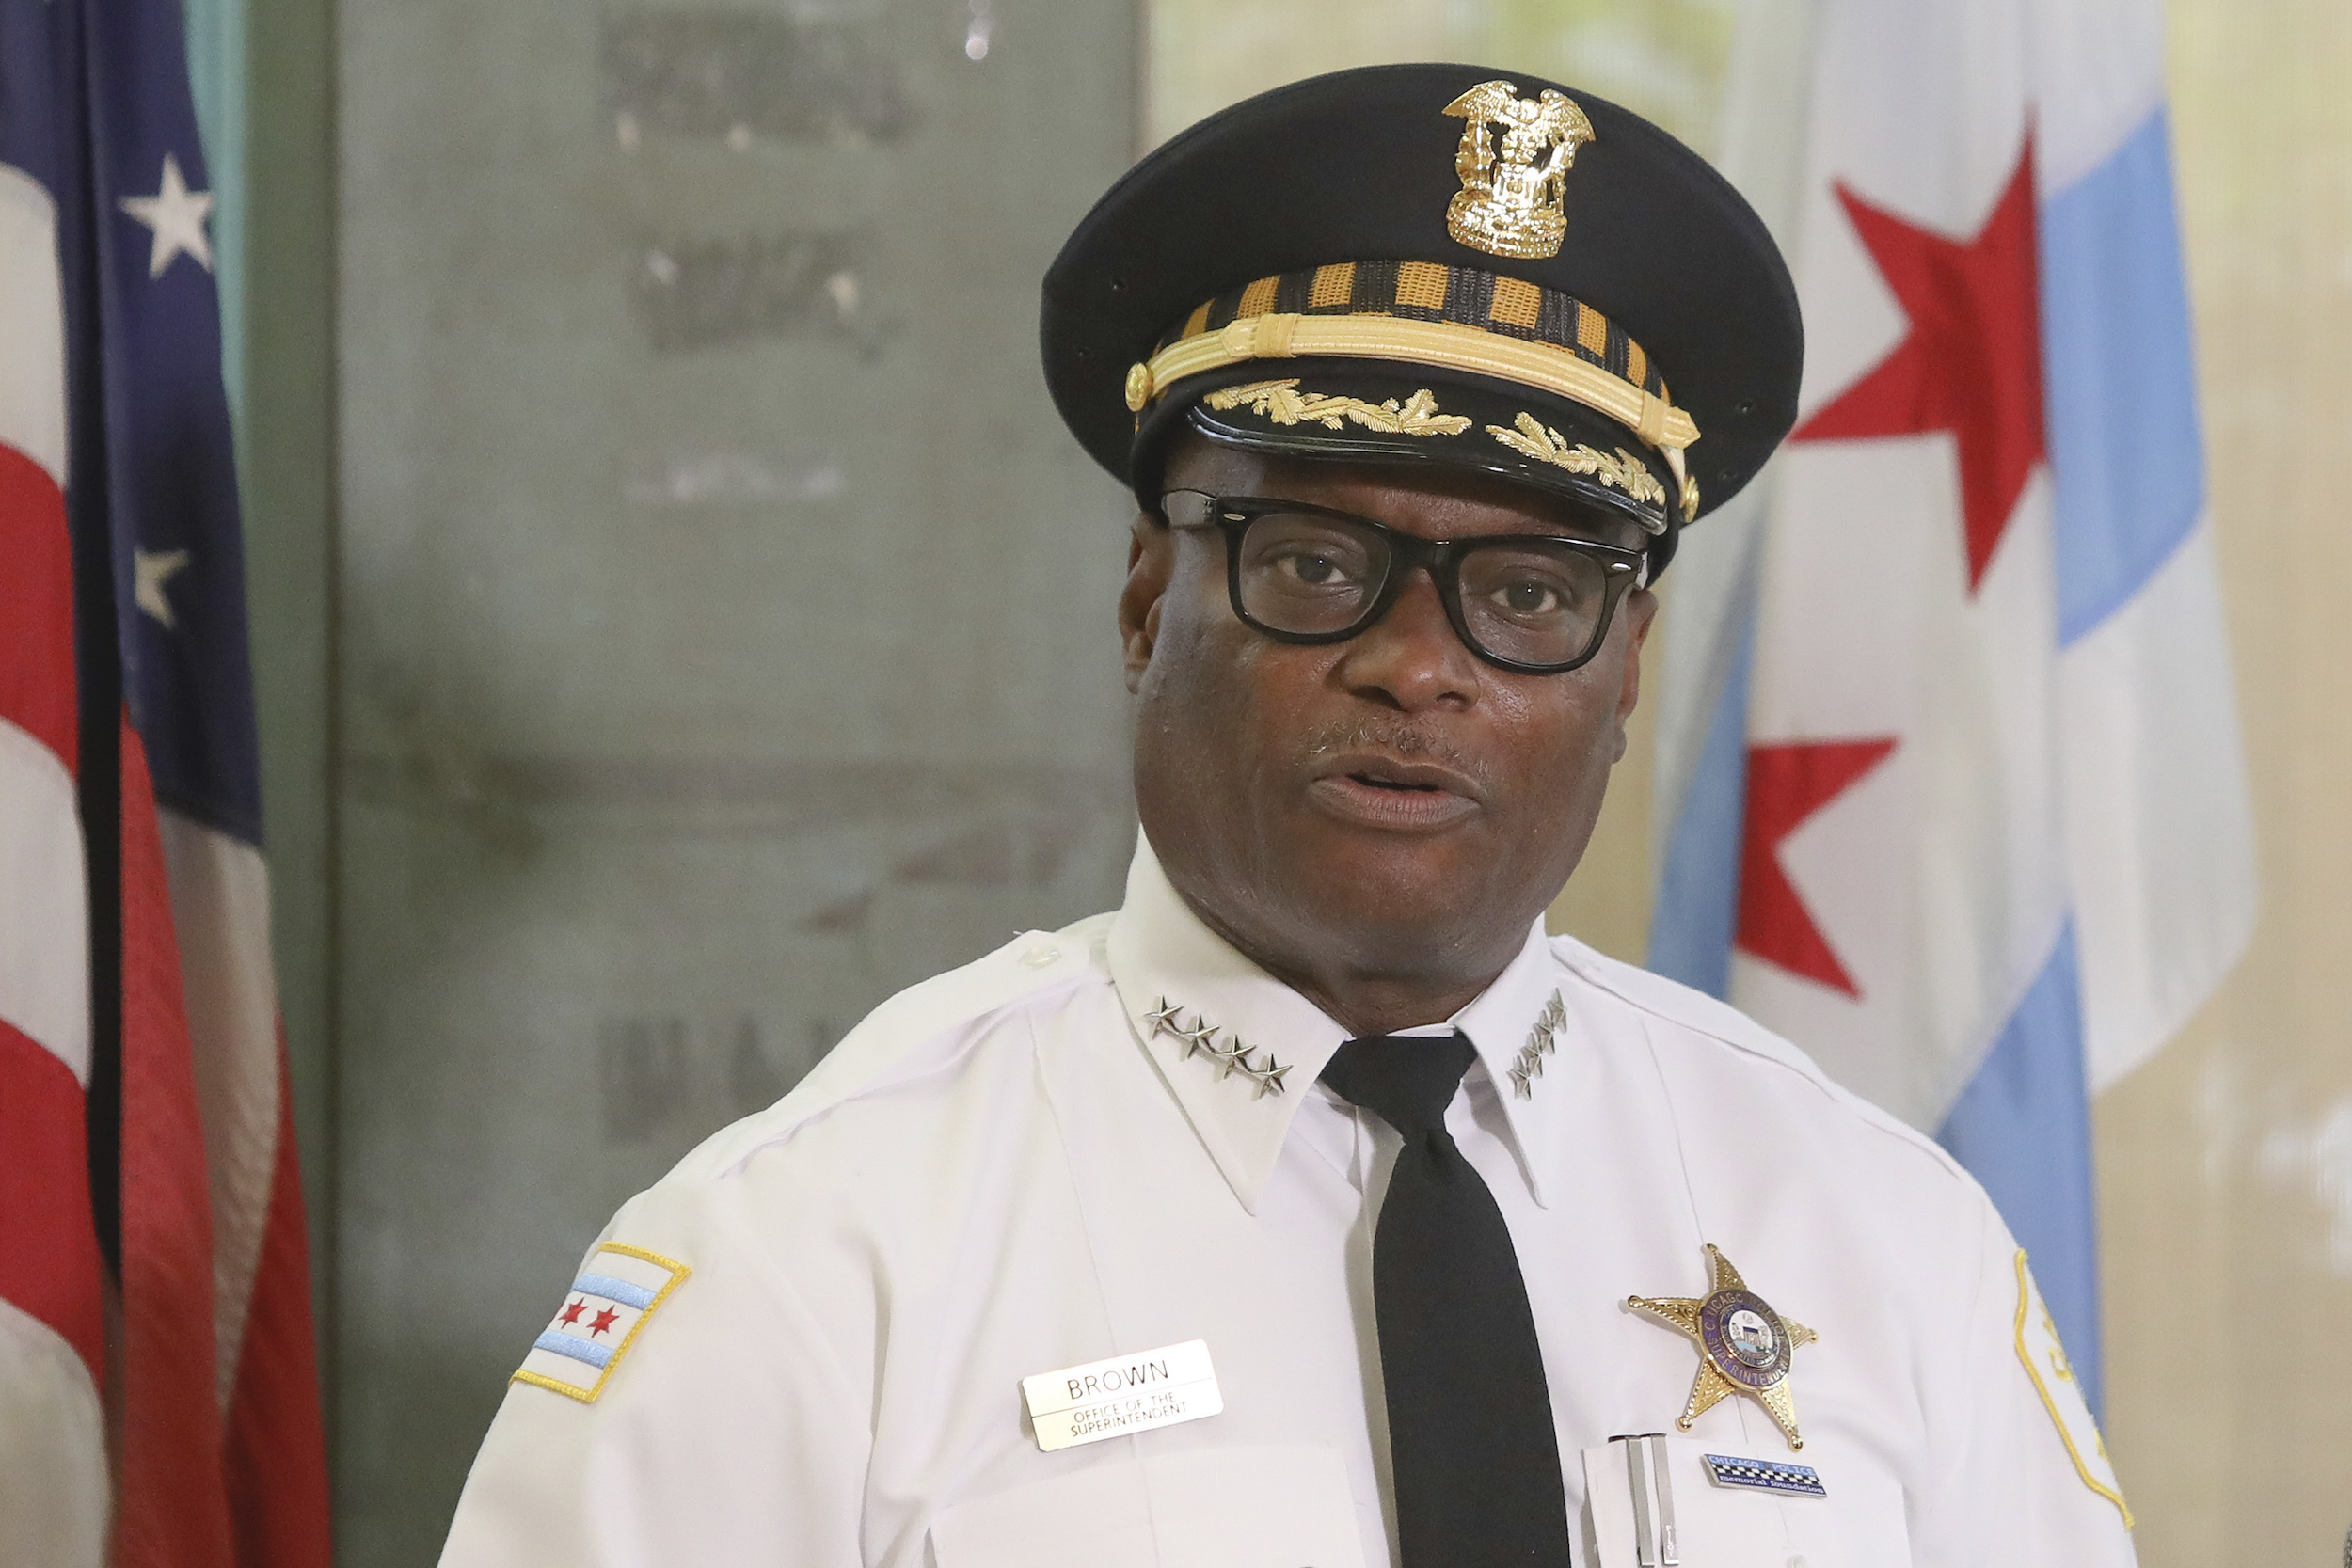 Chicago Police Superintendent David Brown speaks at a news conference in Chicago, on July 27, 2020.